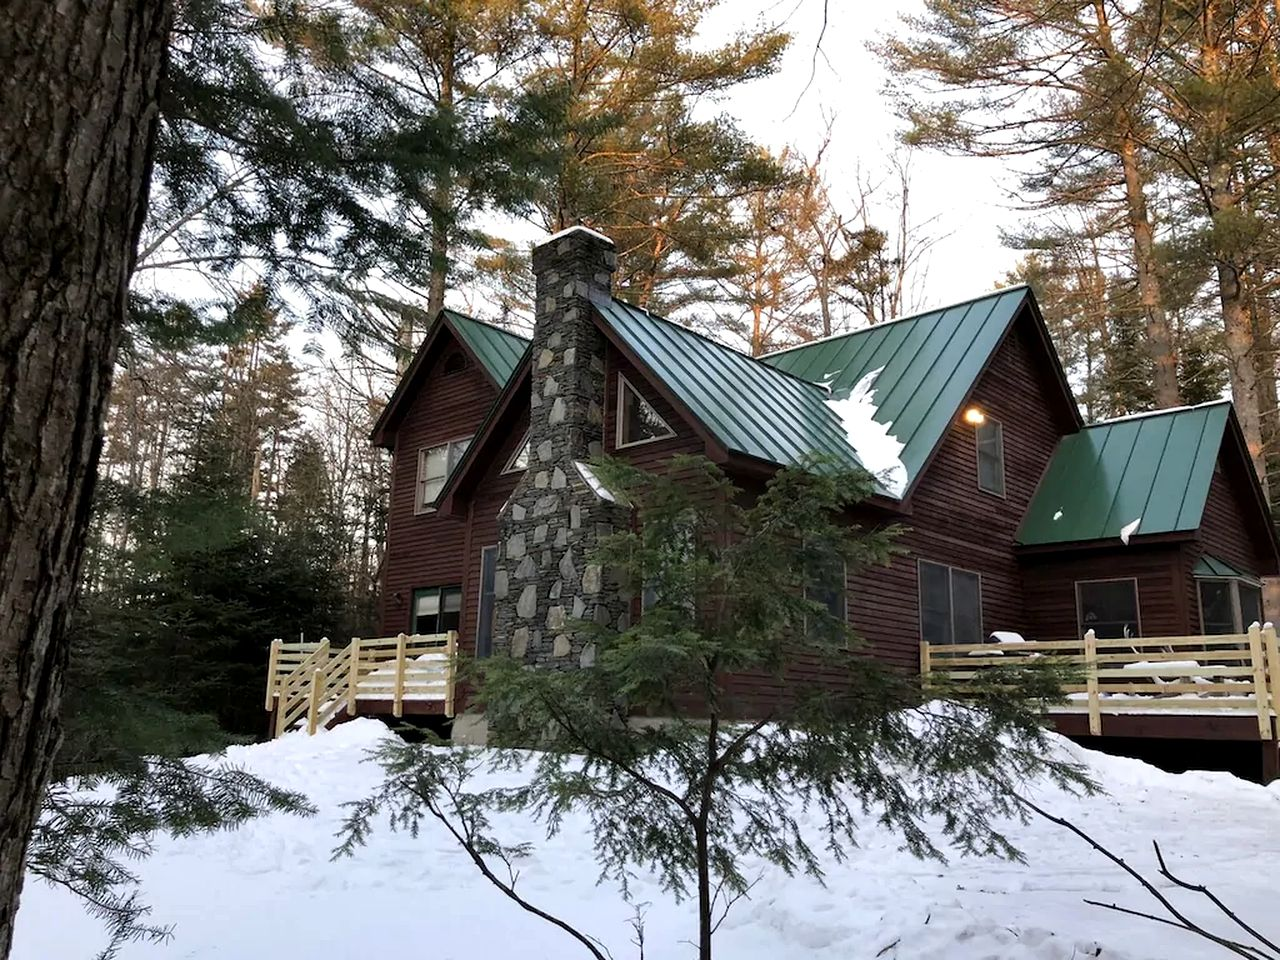 Chalet rental for a ski vacation in Vermont